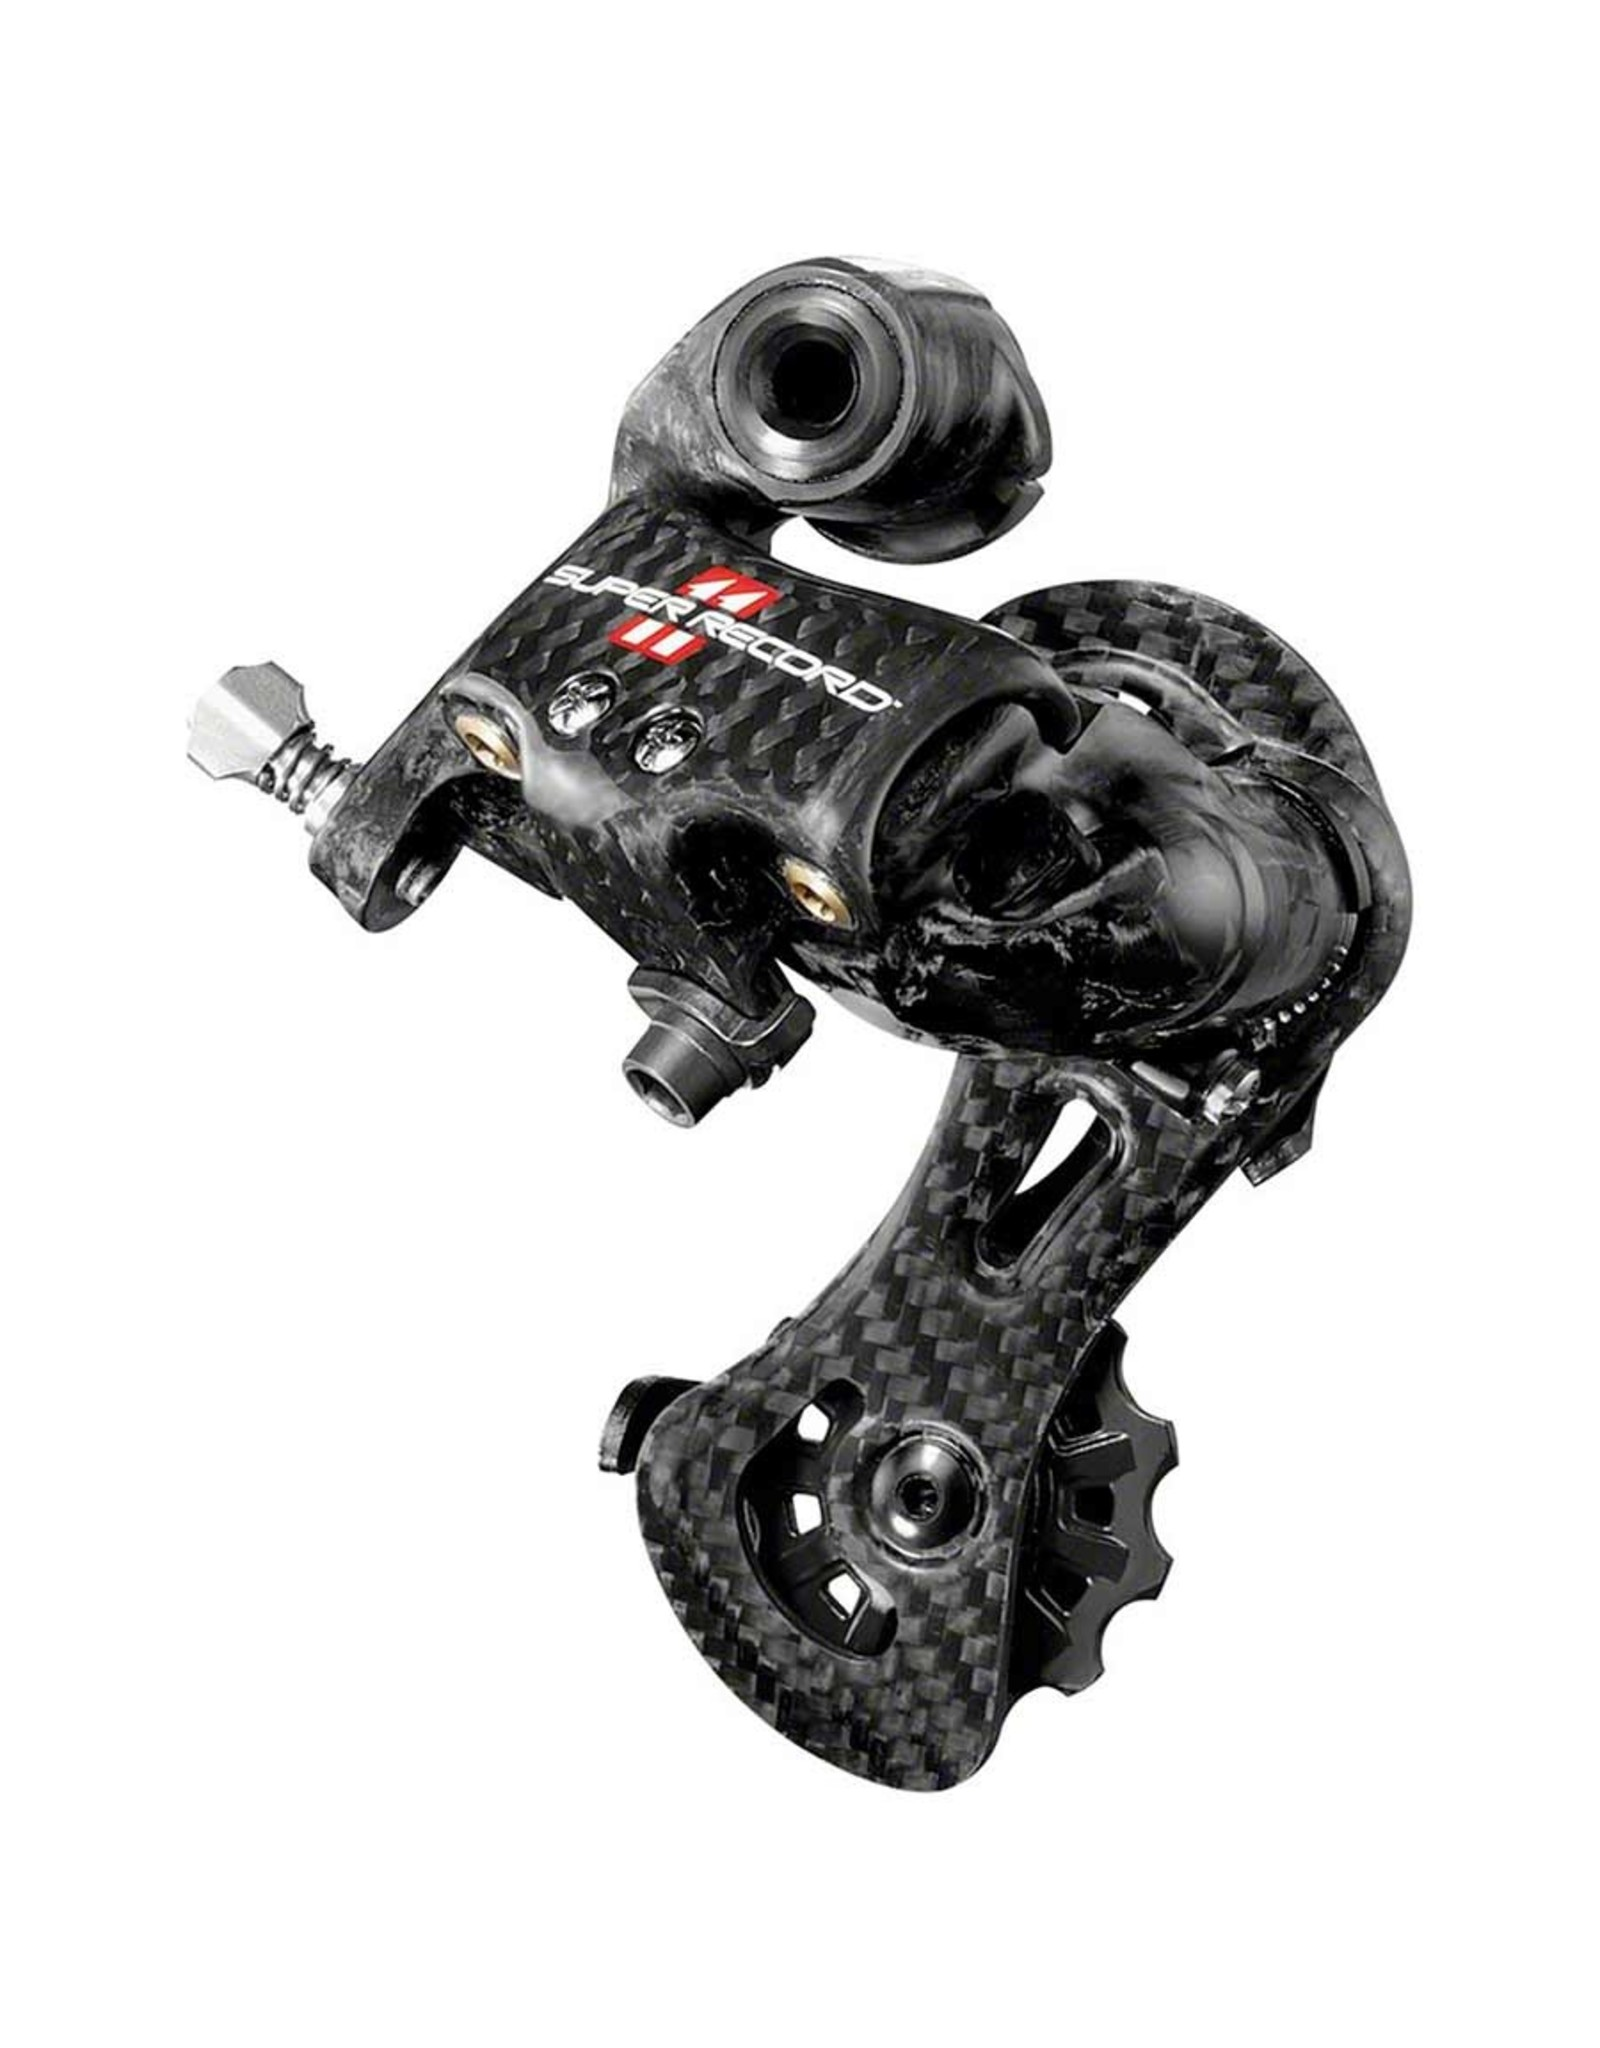 Campagnolo RD-11SR1SP, Rear Derailleur, Speed: 11, Cage: Short, Black